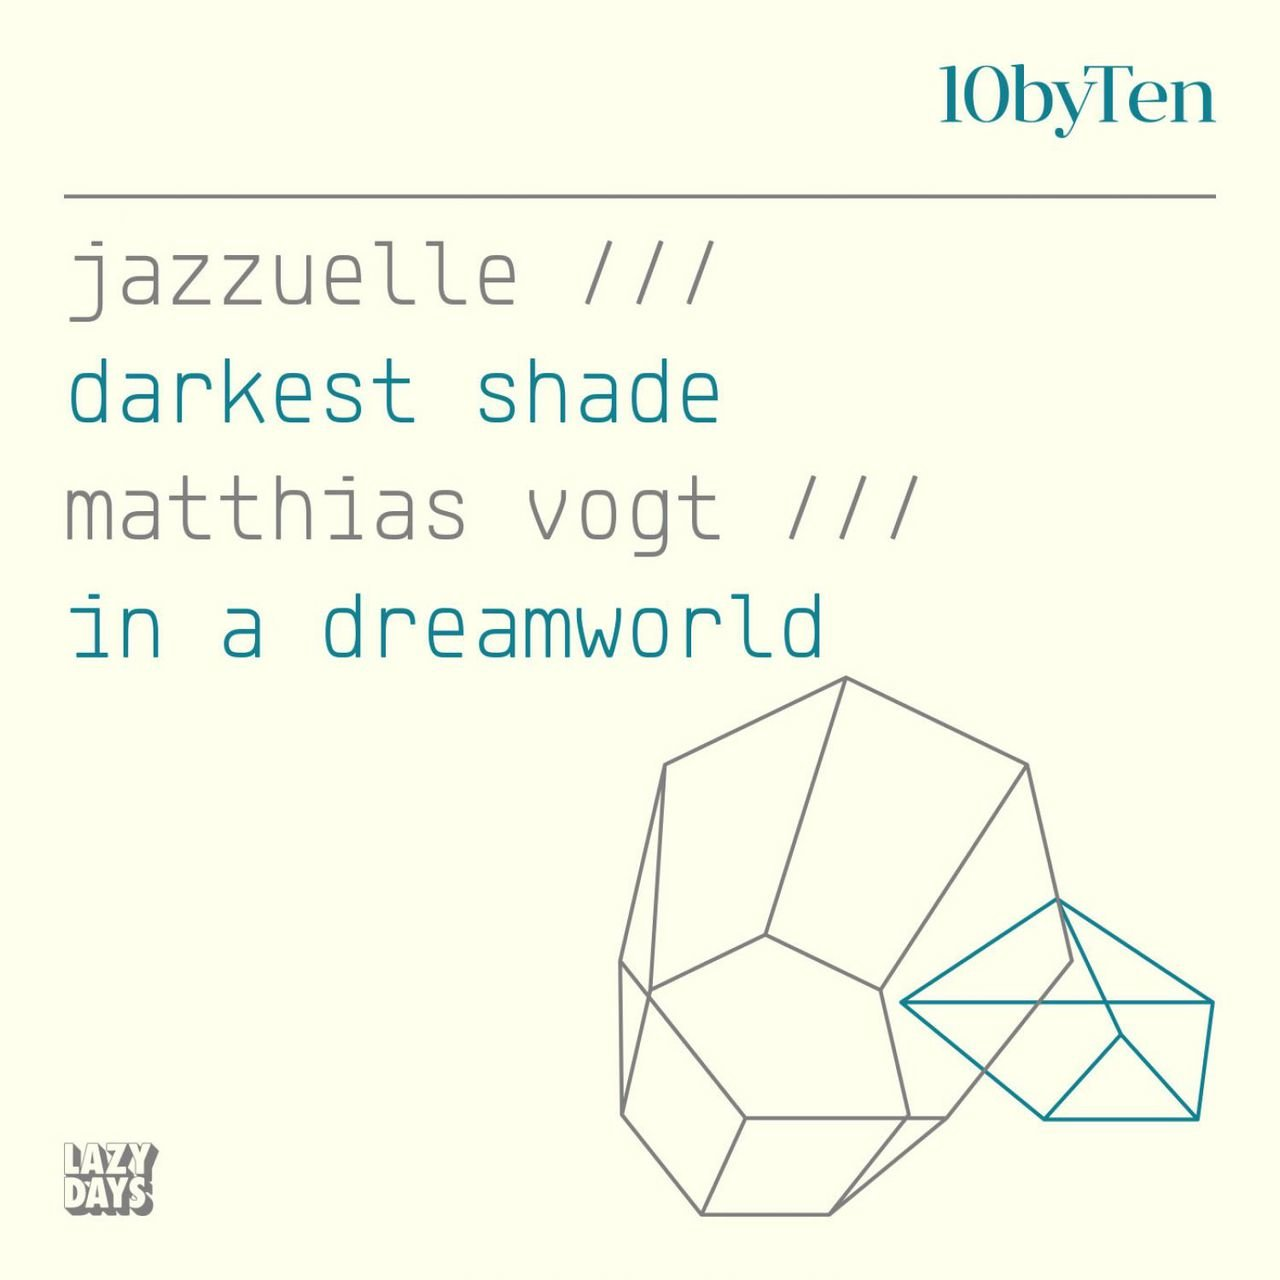 10 by Ten (Jazzuelle/Matthias Vogt)